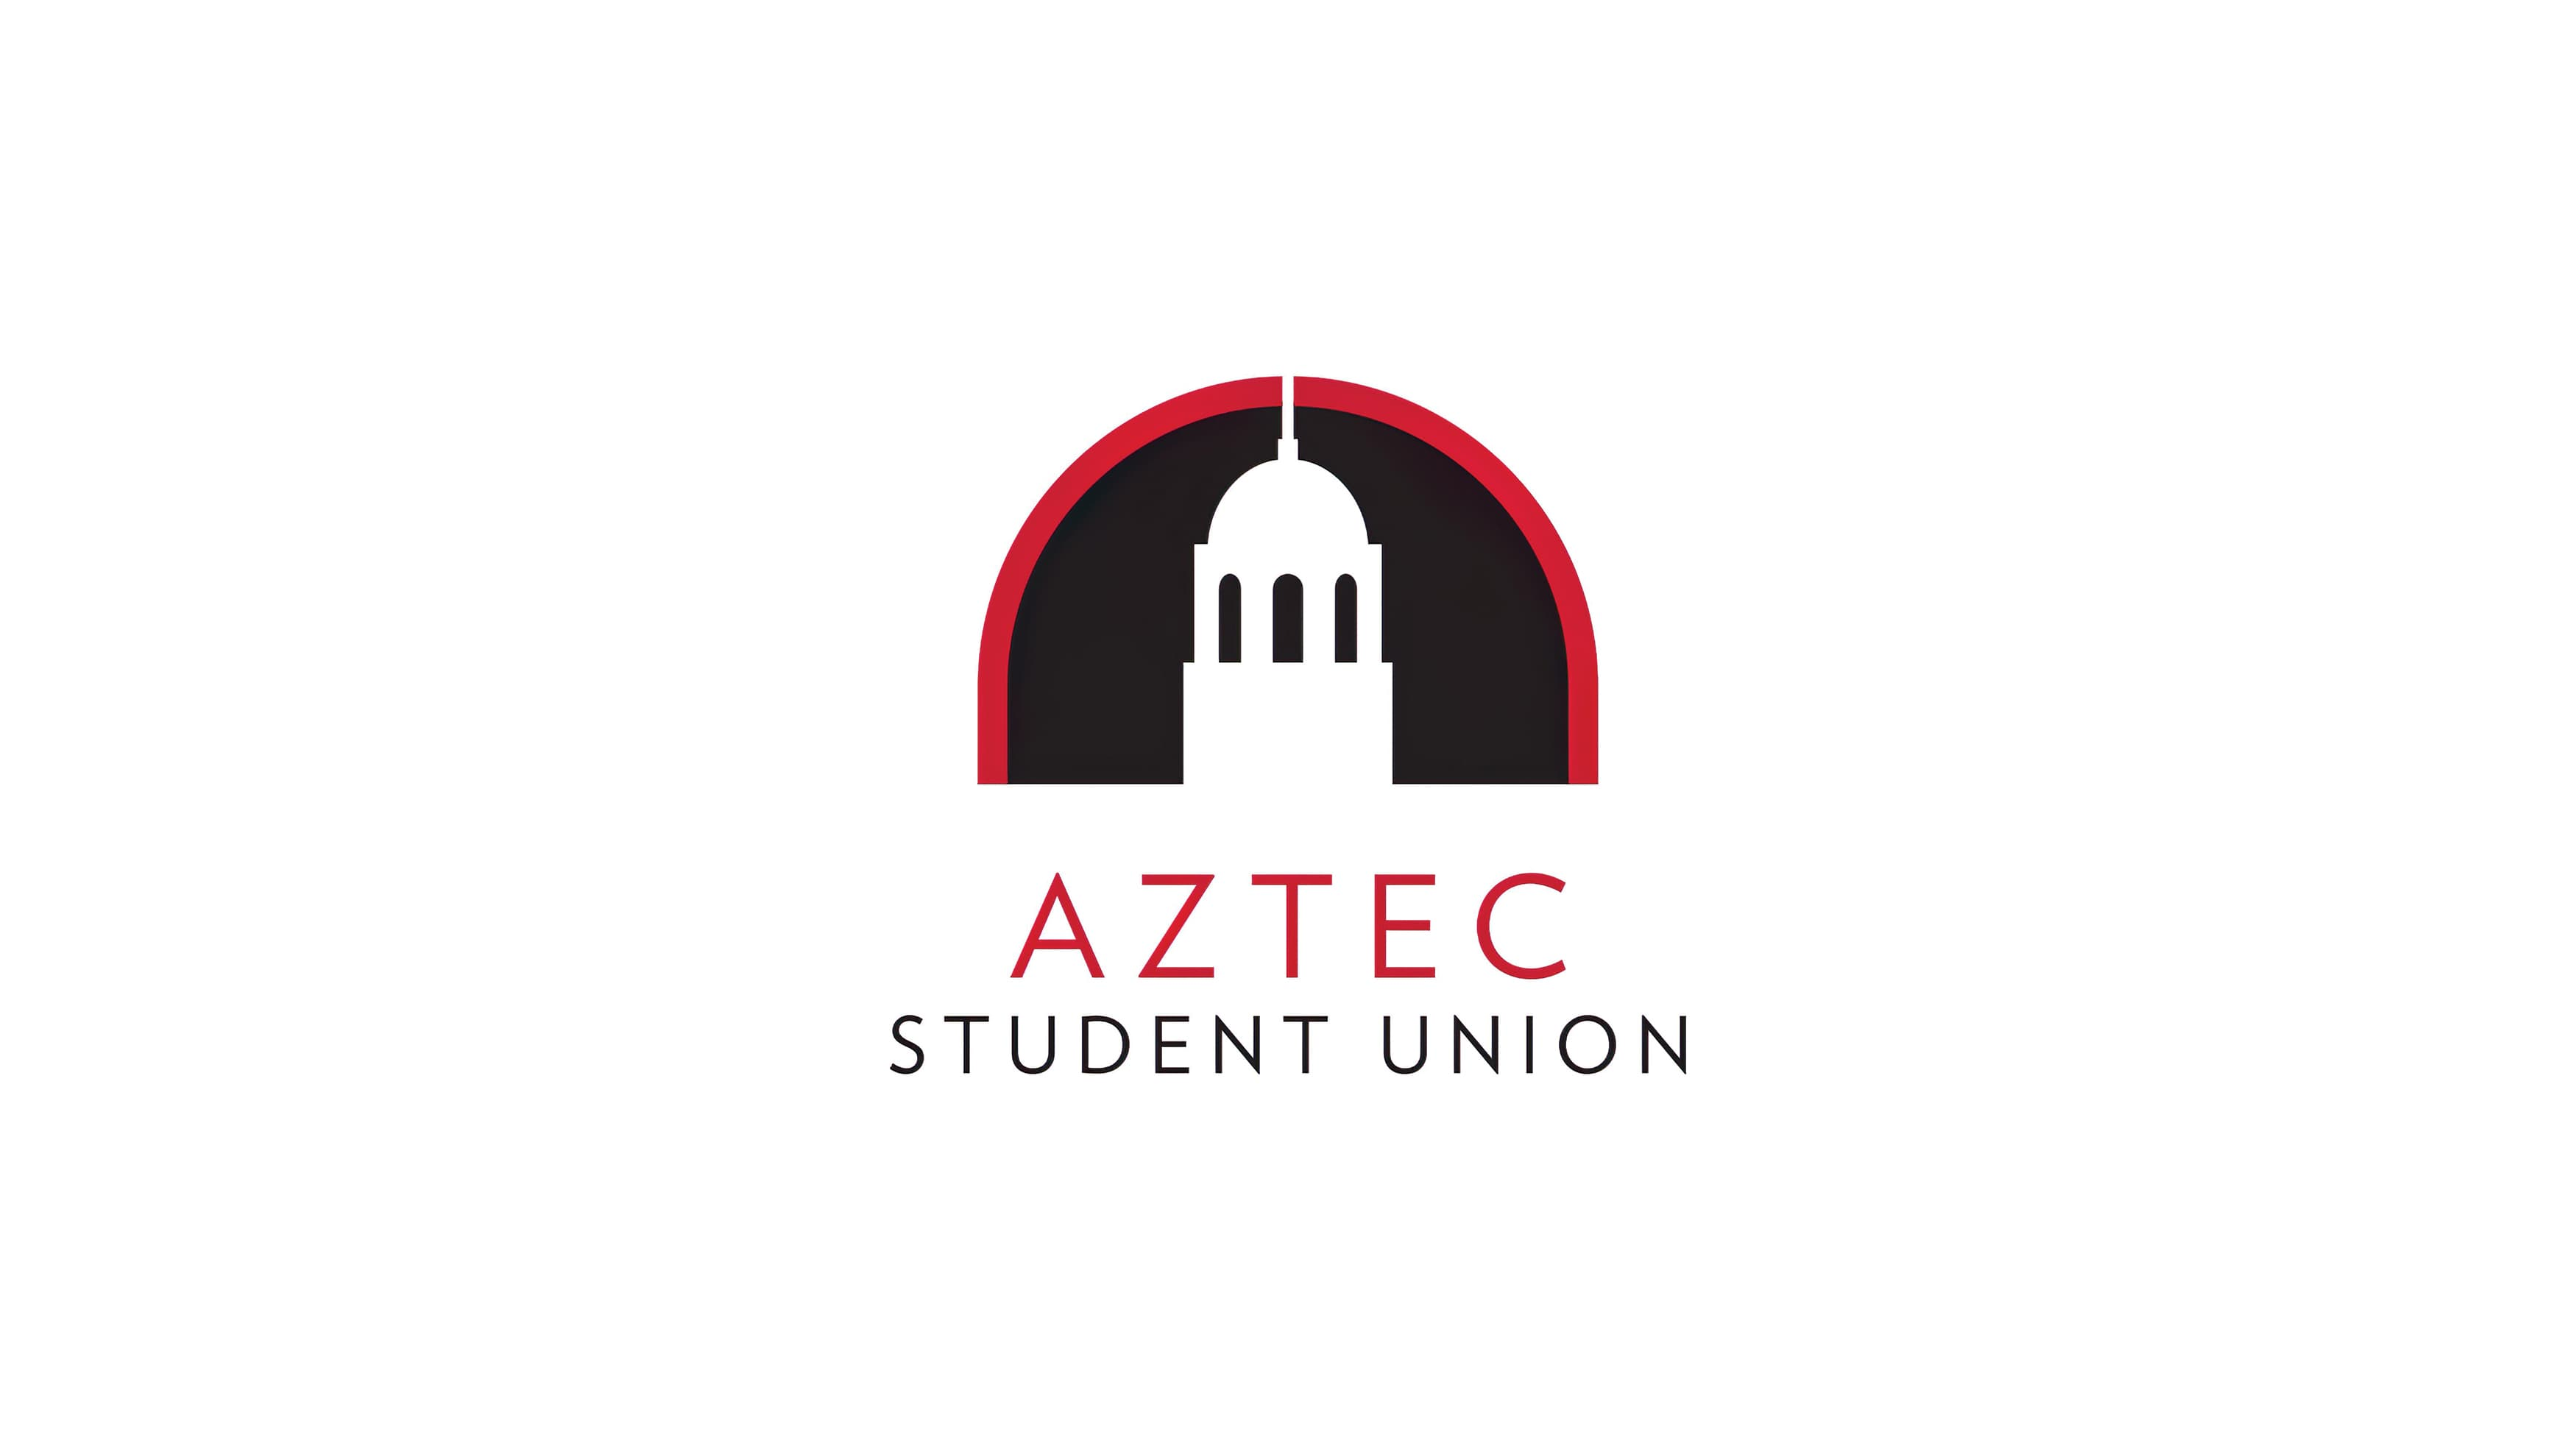 San Diego State University Student Union brand logo and mark